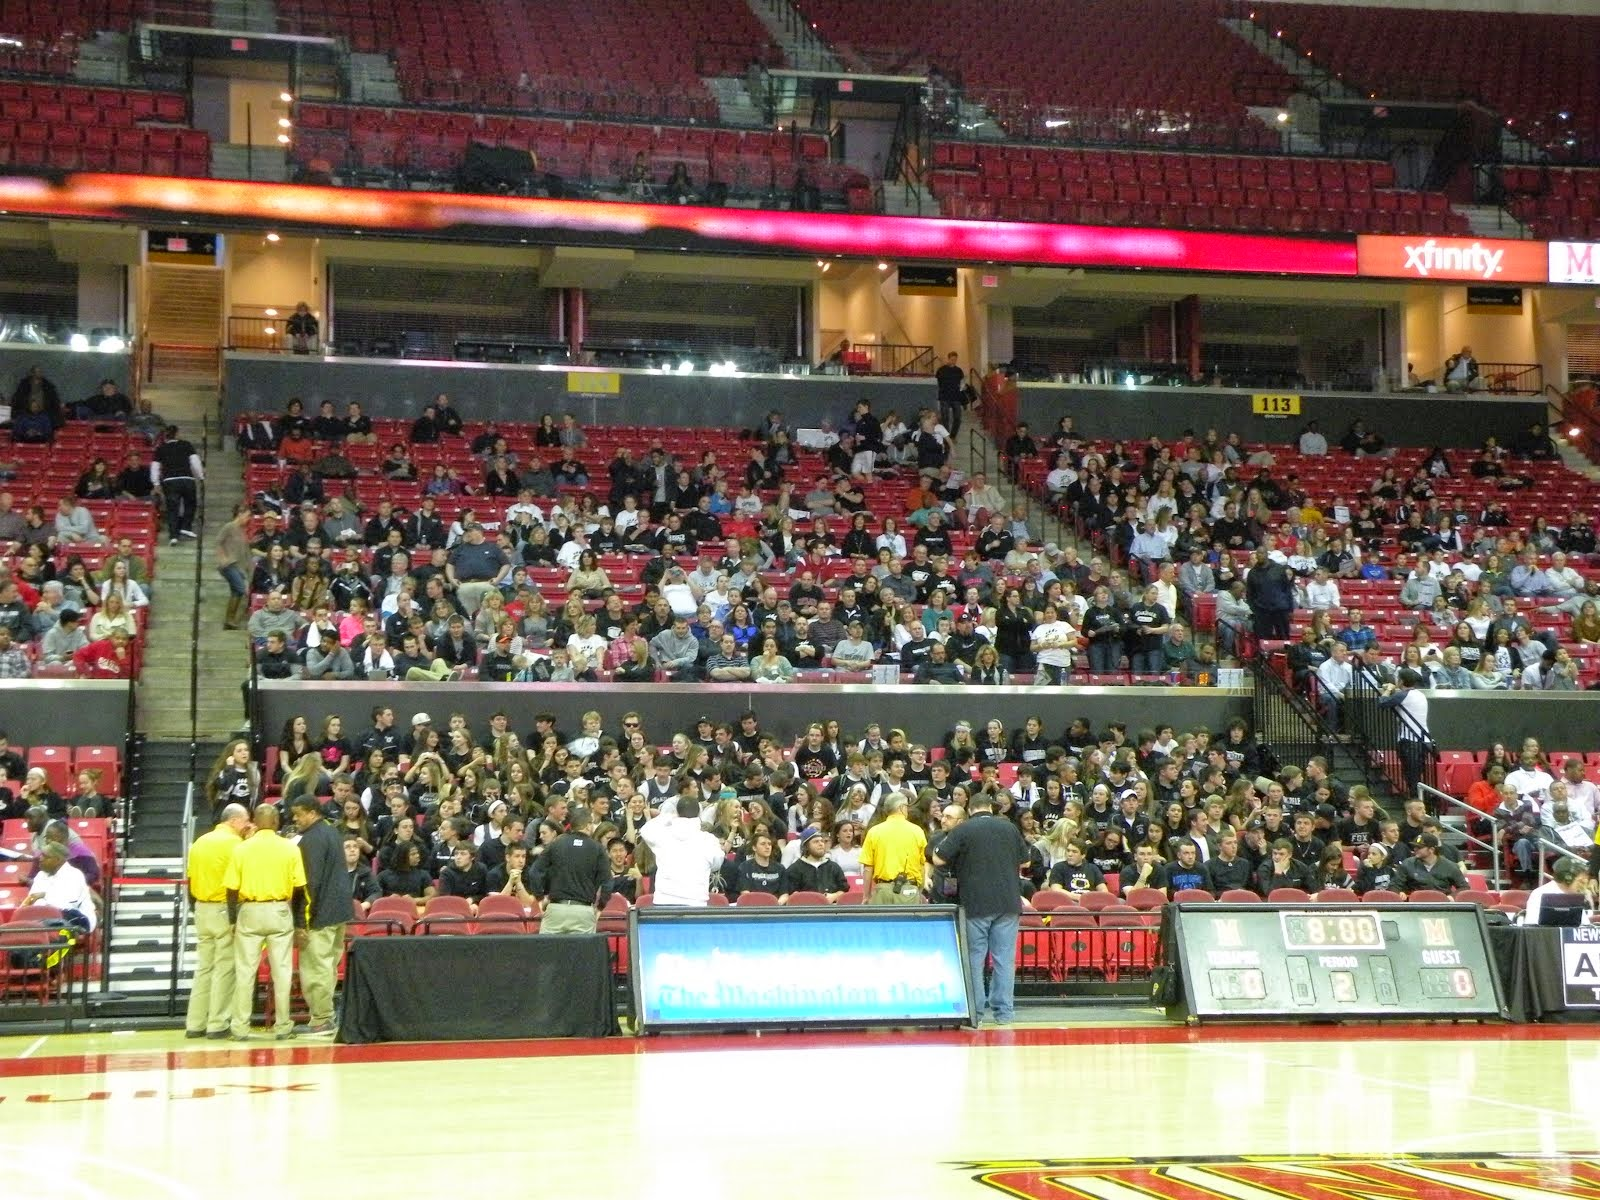 OAKDALE FANS AT XFINITY CENTER